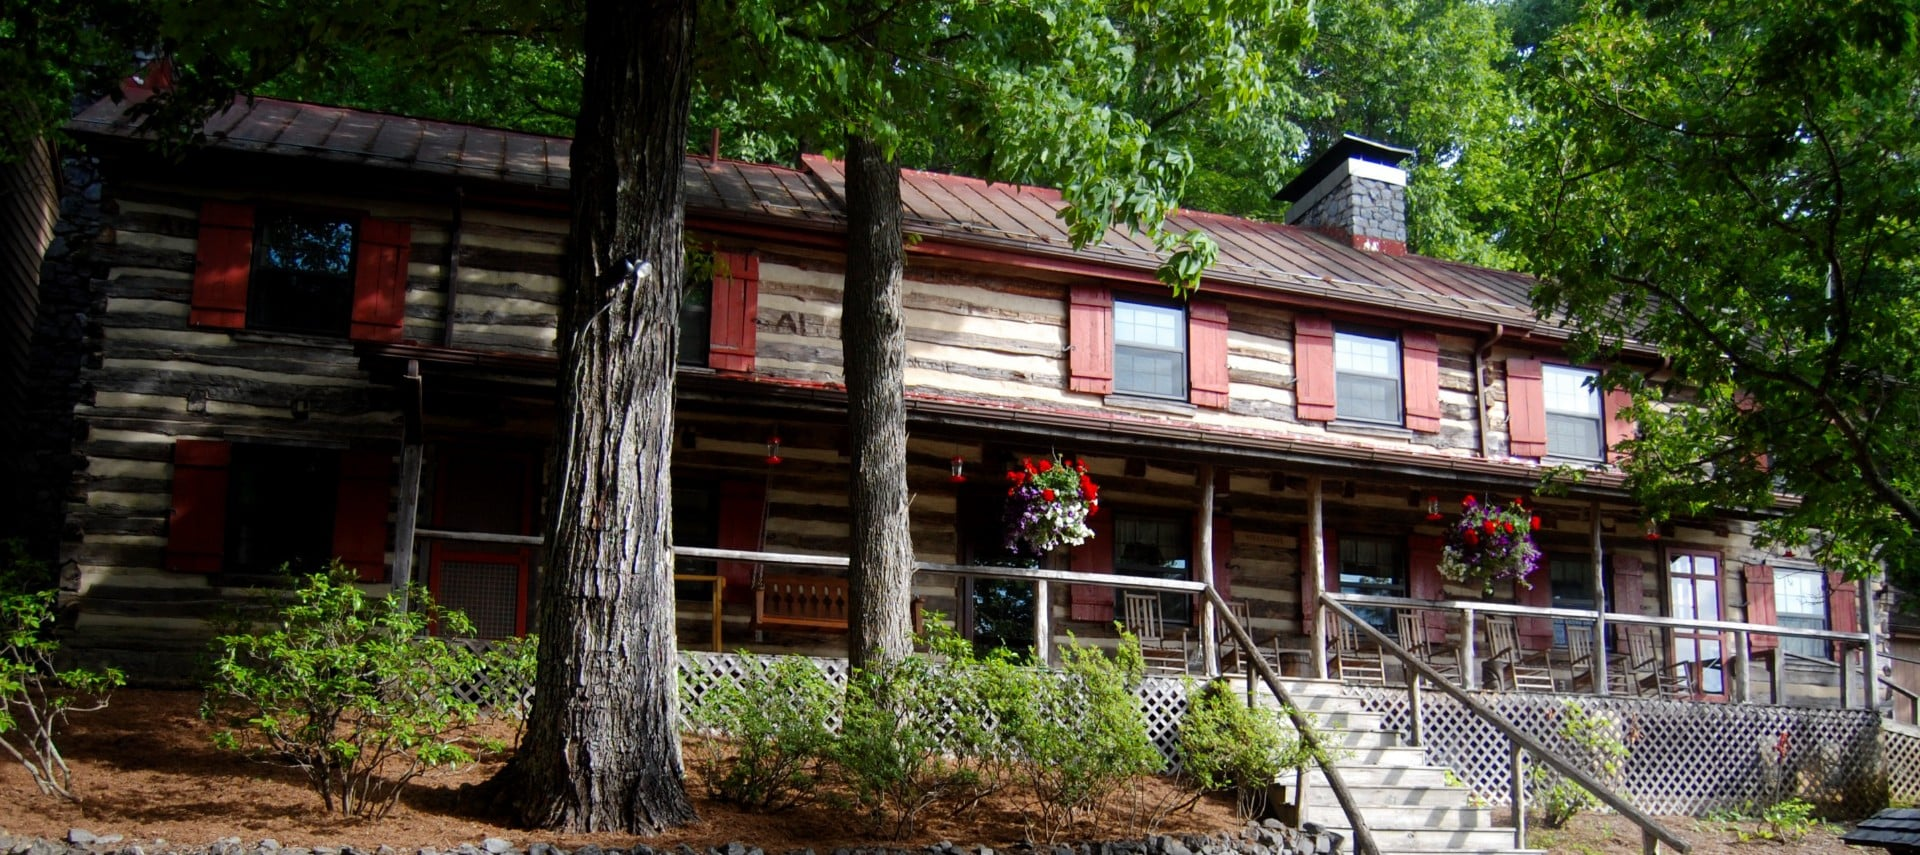 Front view of a long log cabin with red shuttered windows and an expansive front porch with stairs.